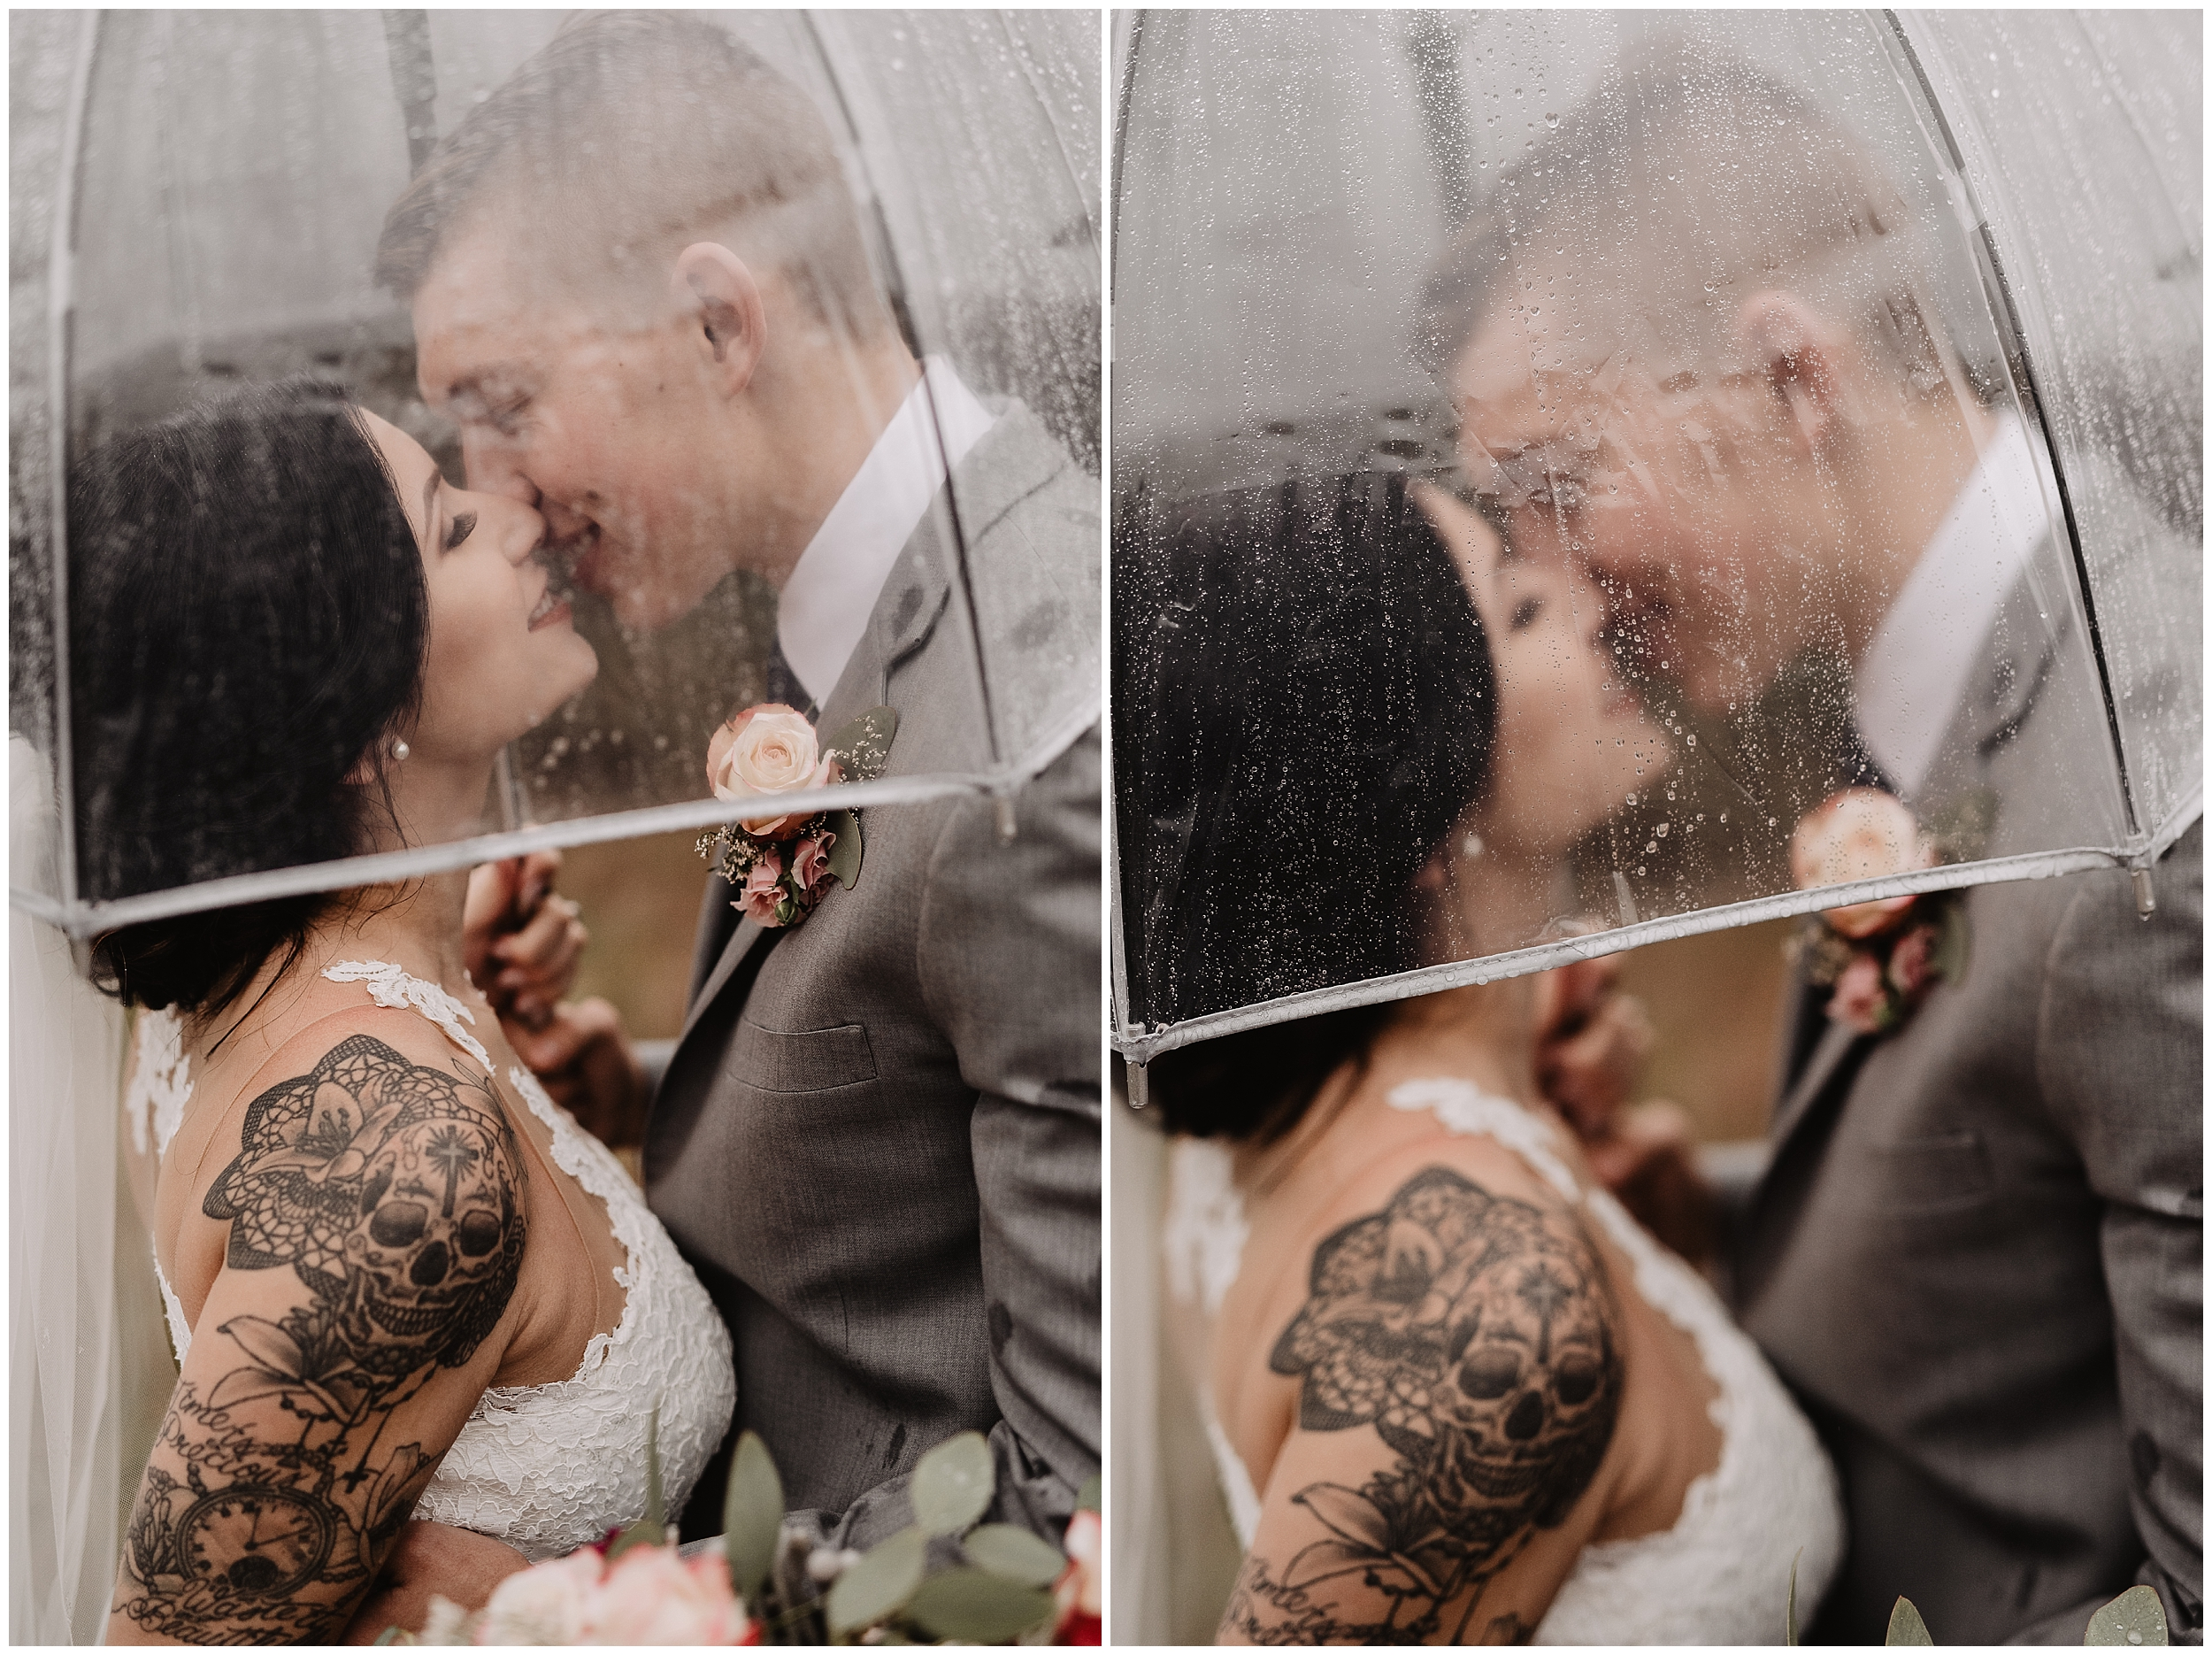 oklahoma wedding photography first look bride groom wedding day sweet rustic timbers outdoor viola kansas overcast rain umbrella clear